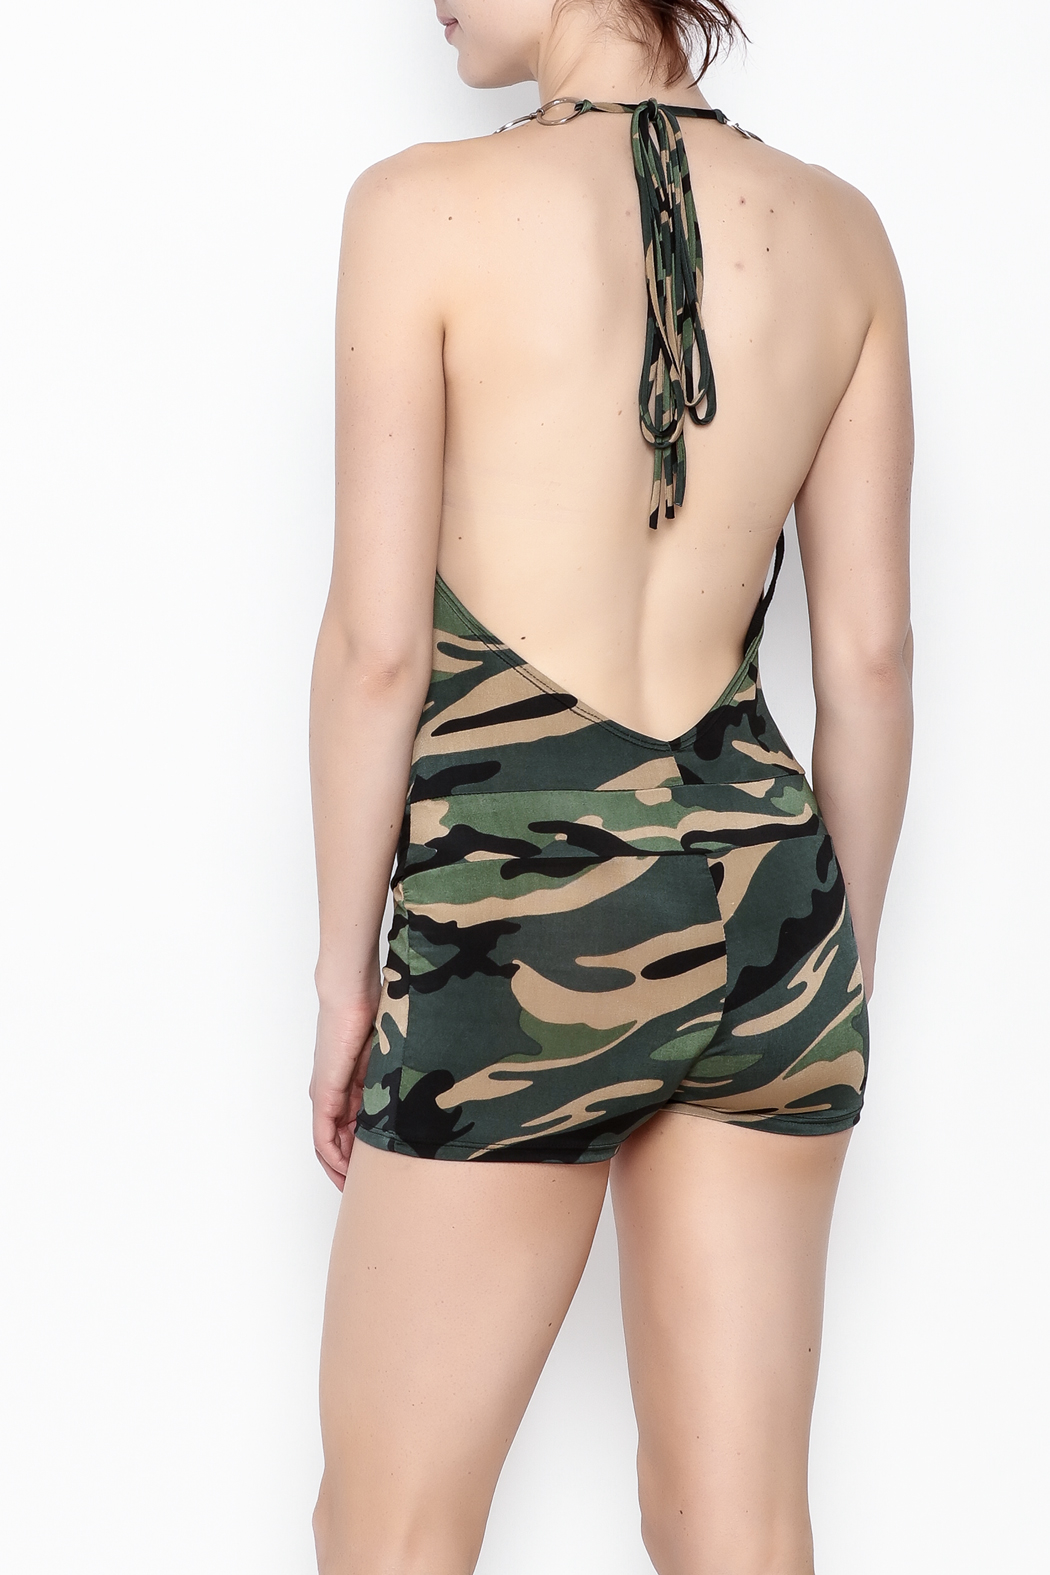 demore Camofluage Romper - Back Cropped Image